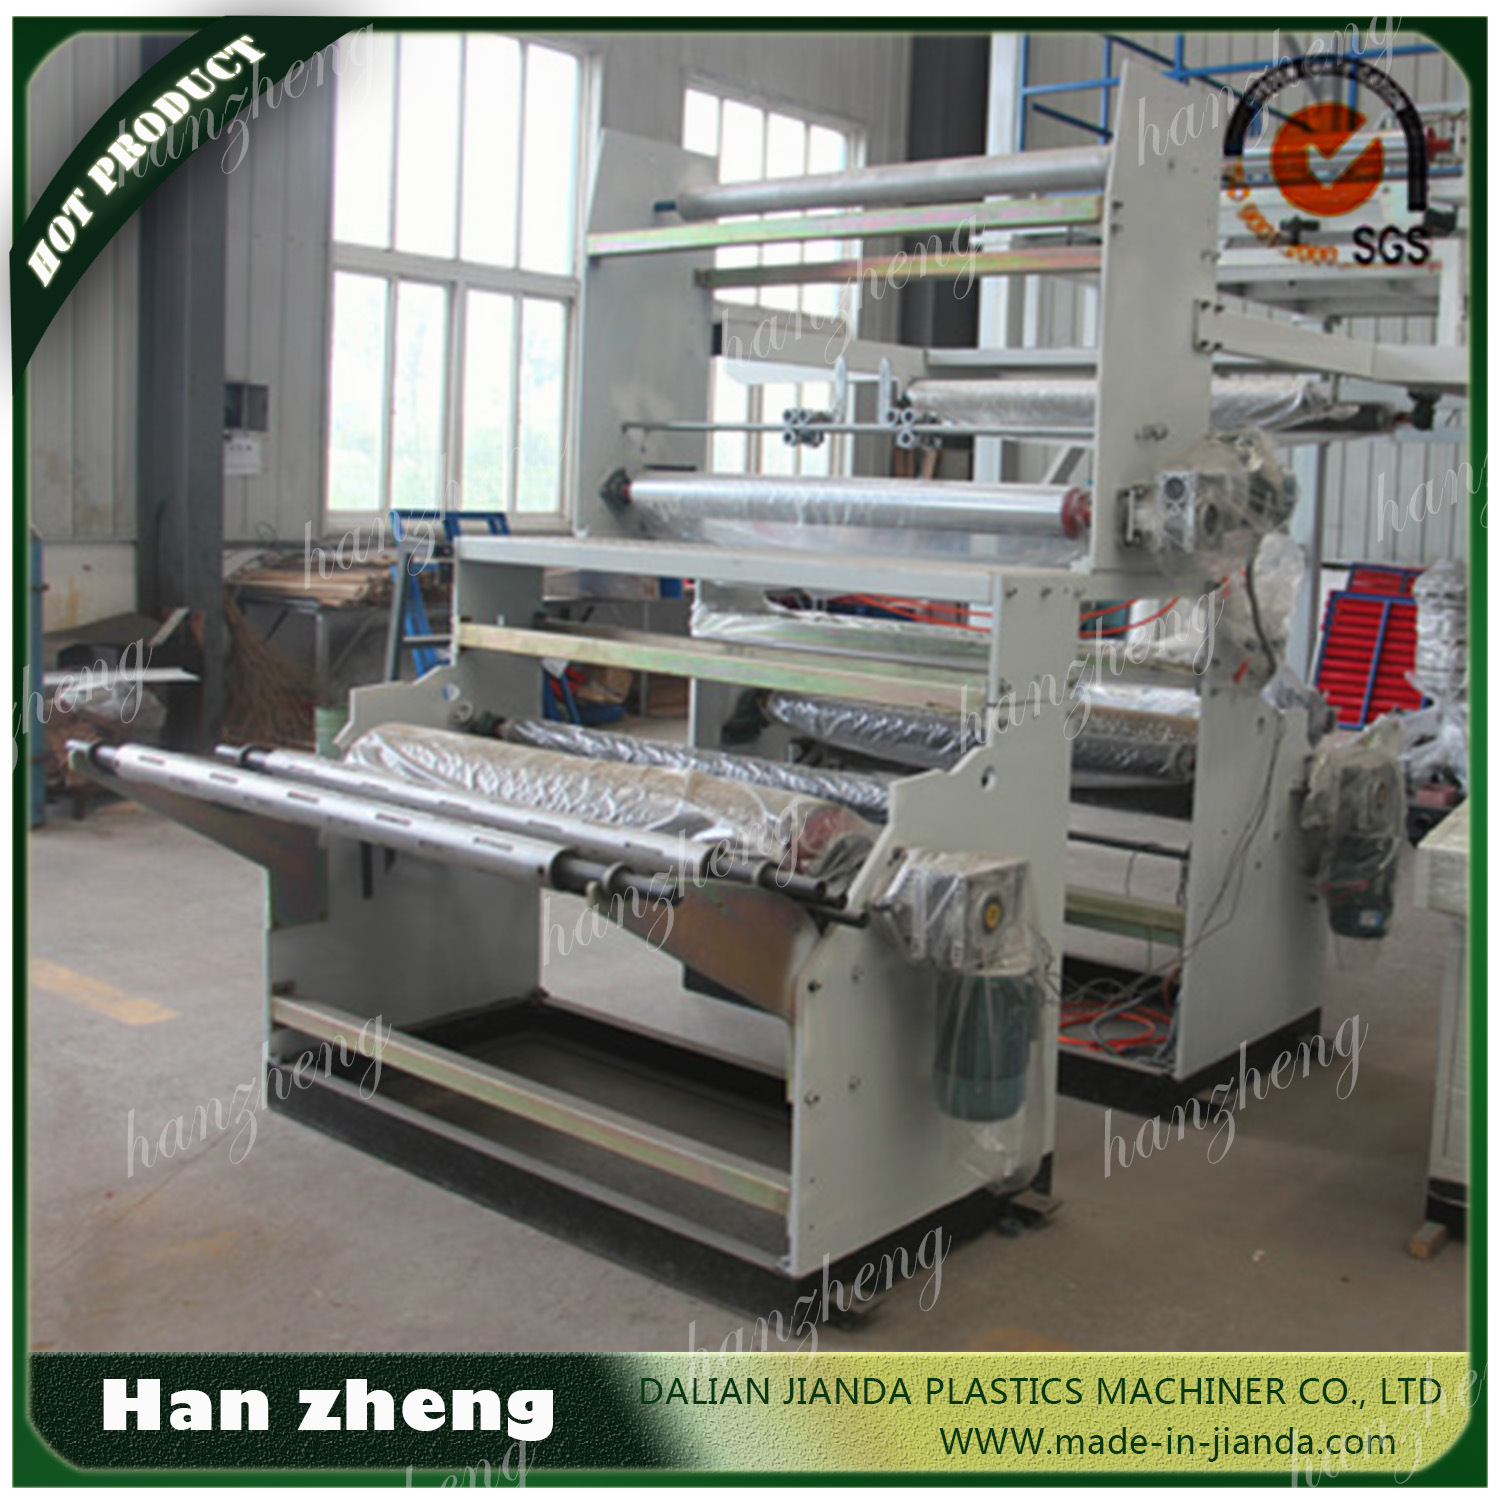 Three Layer Co-Extrusion Horizontal Haul off Oscillating Rotary Film Blowing Machine 55-2-65-1-1600